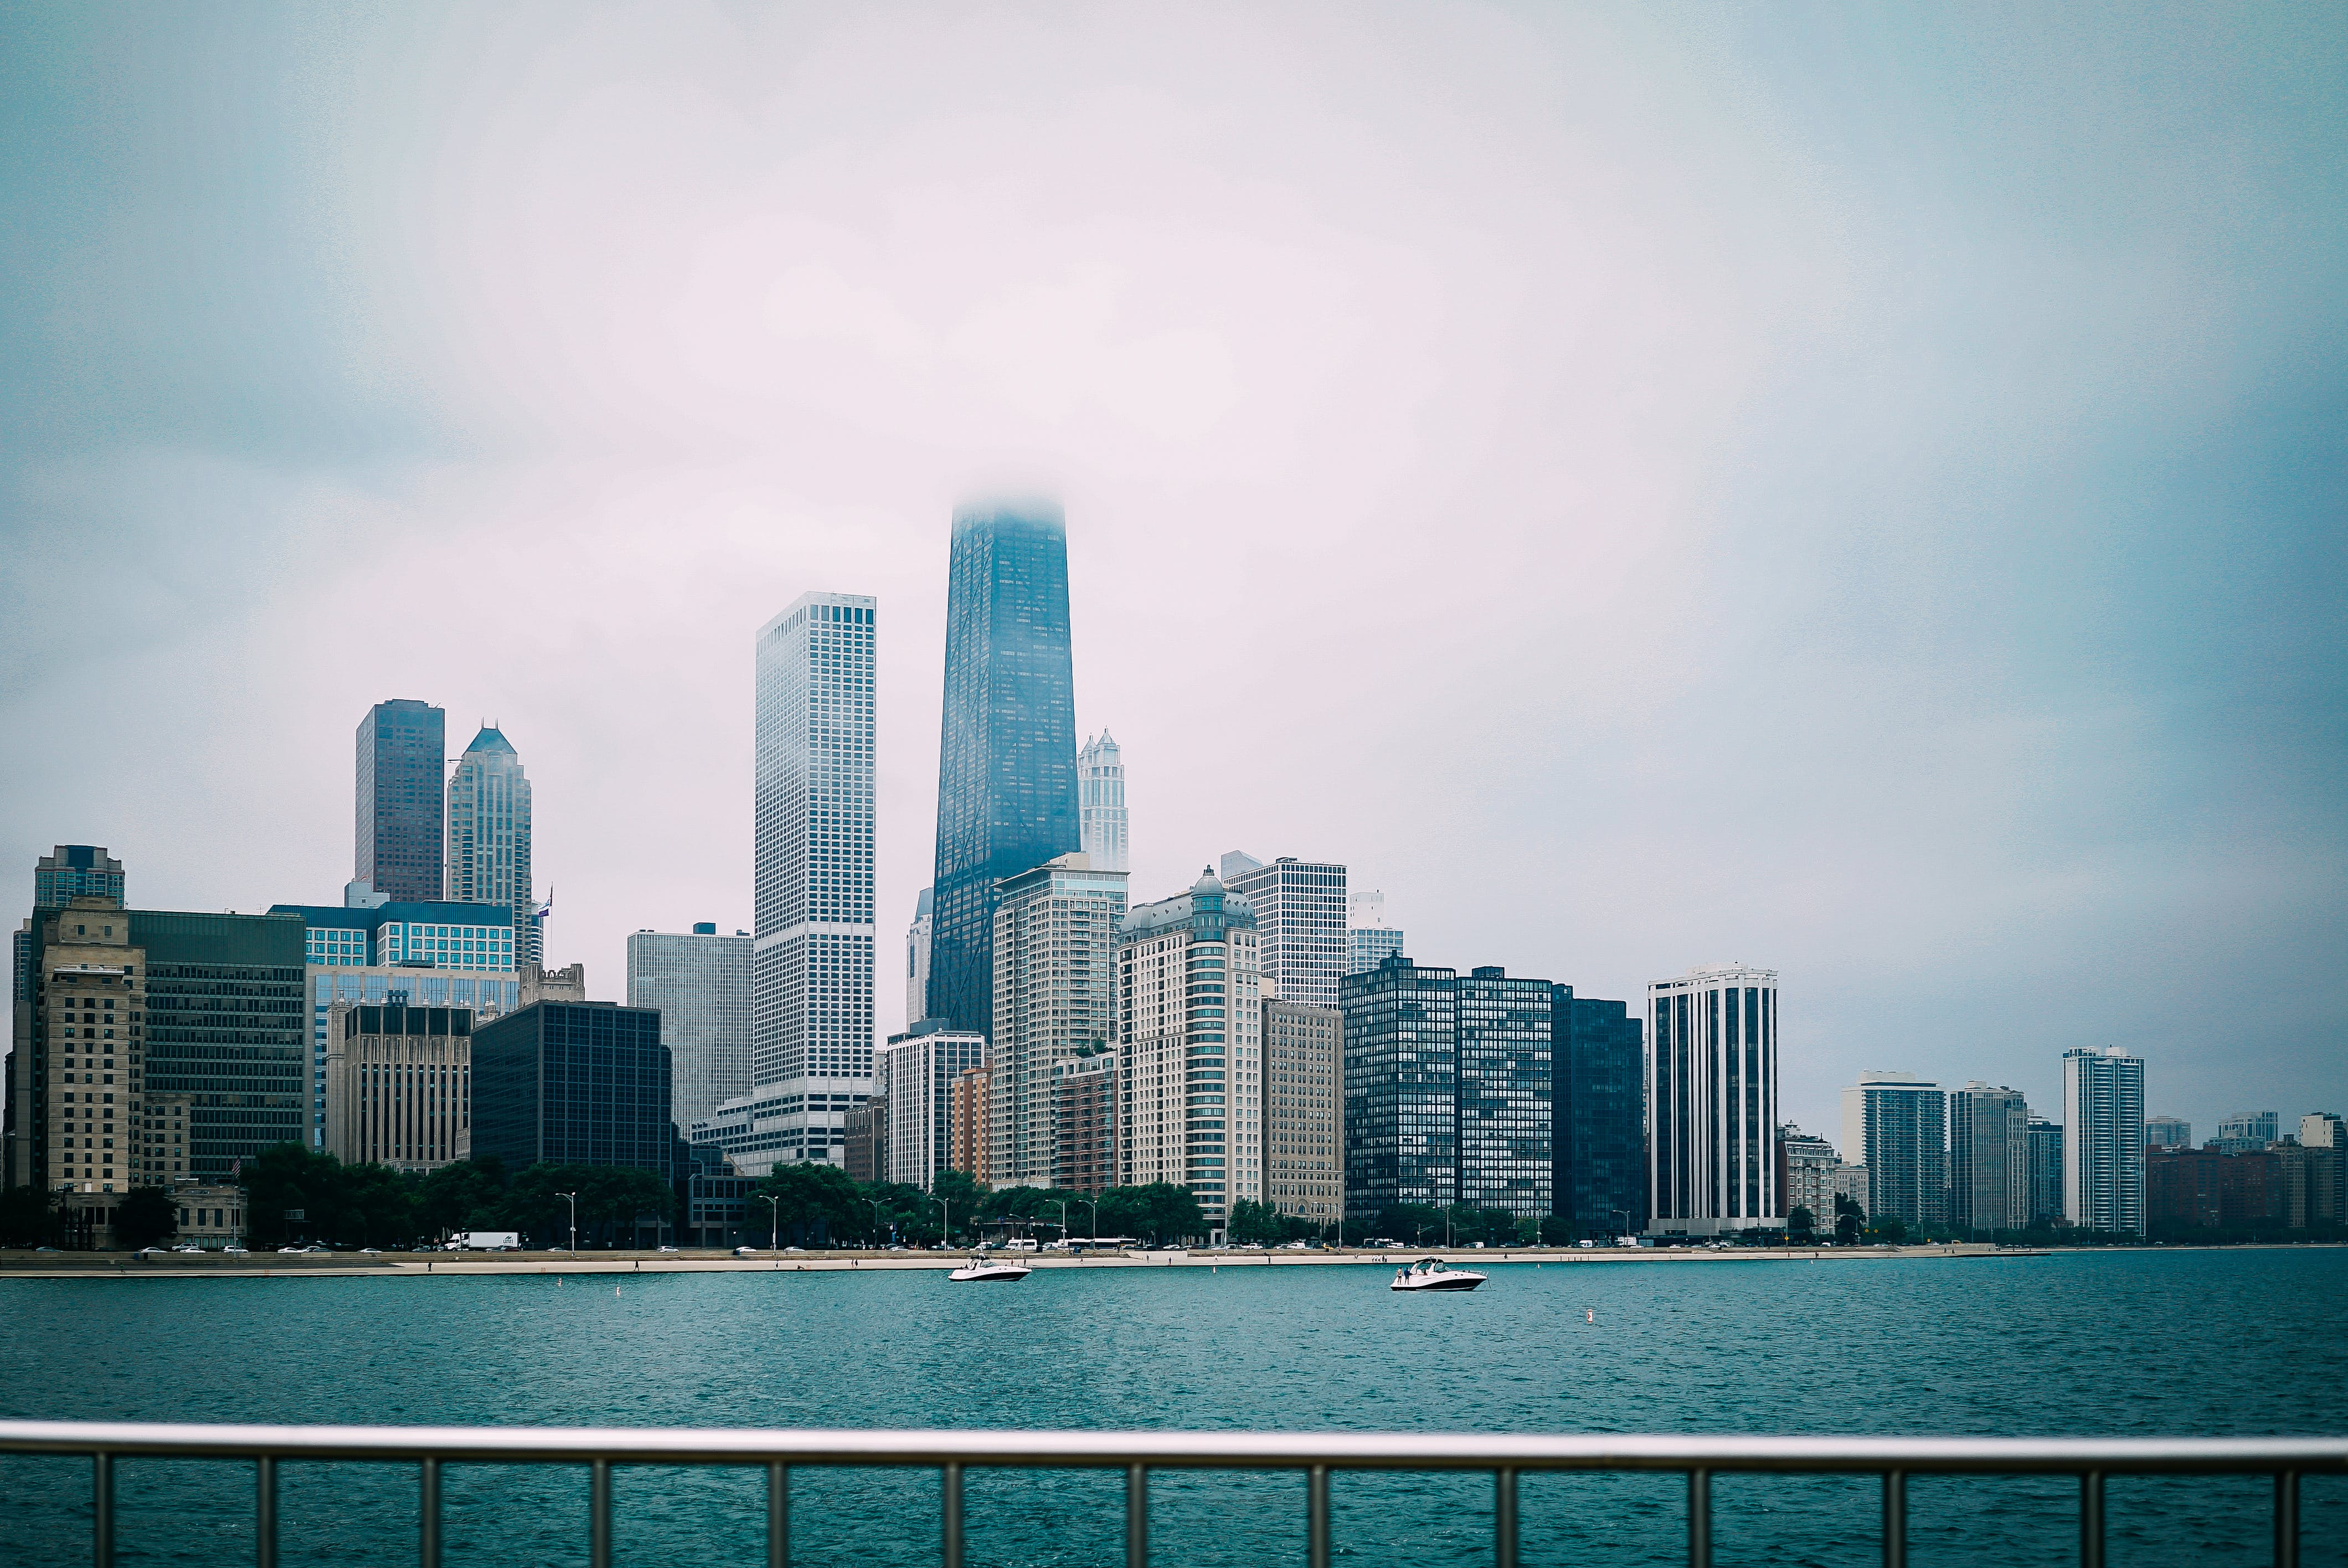 High Rise Buildings Near Body of Water